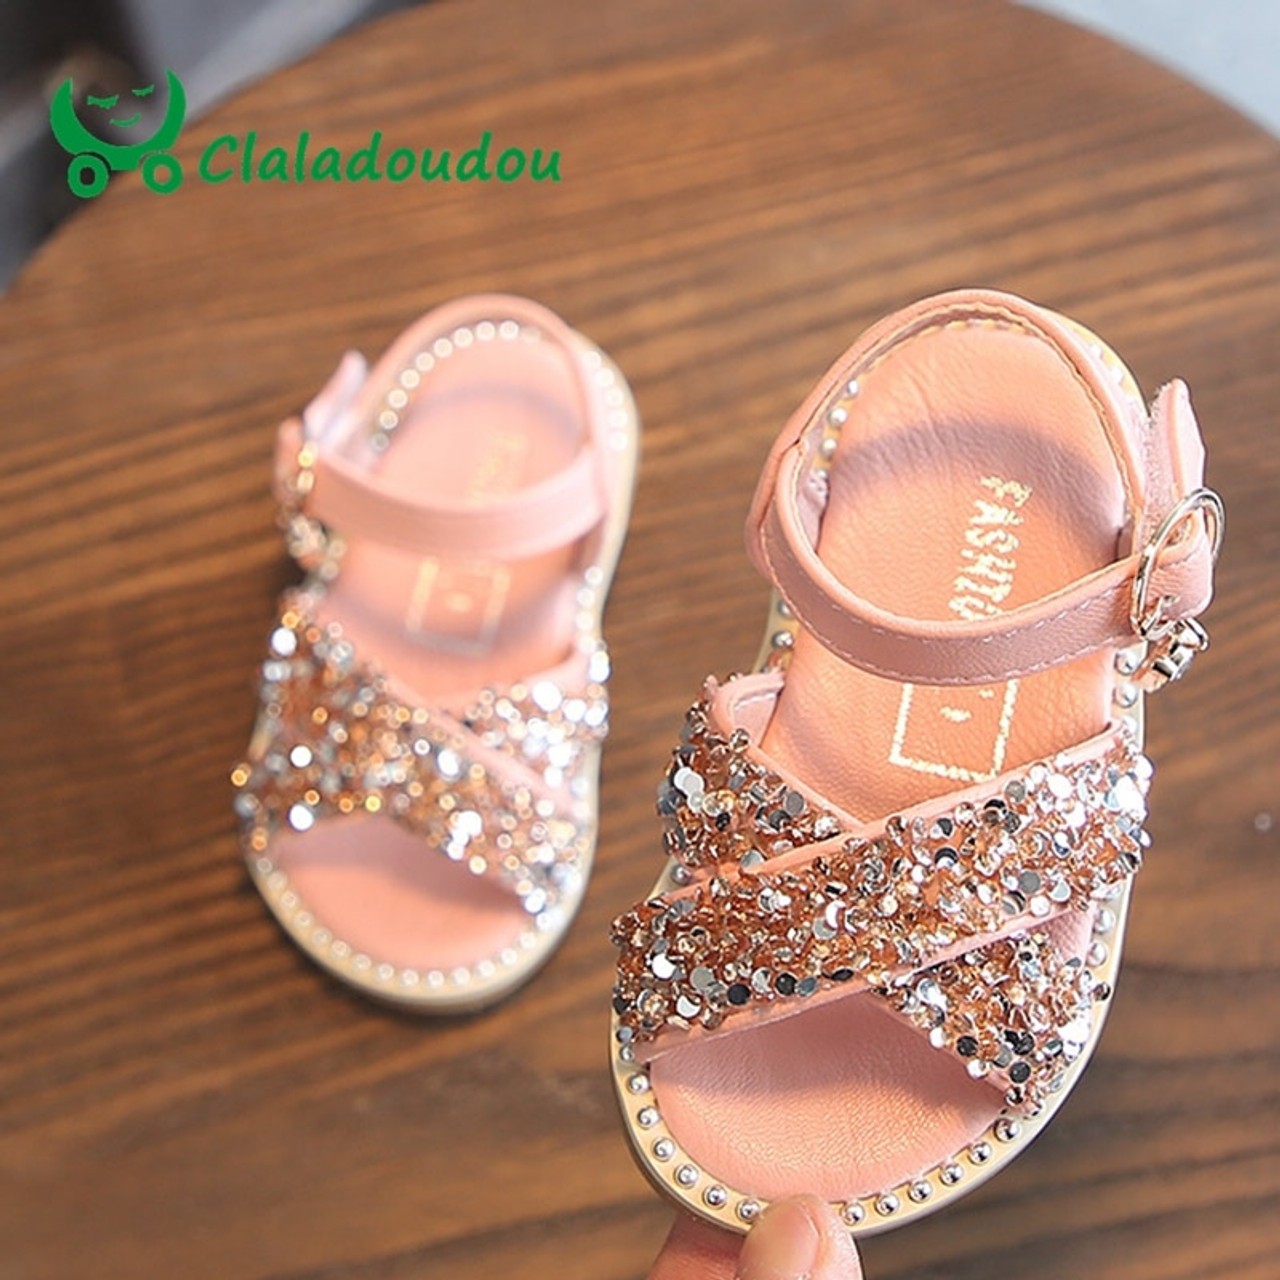 5dada59a739ed4 Claladoudou 11.5-15.5CM Baby Bling Shoes Pu Leather Infant Beige Rivets  Summer Sandals Kid ...